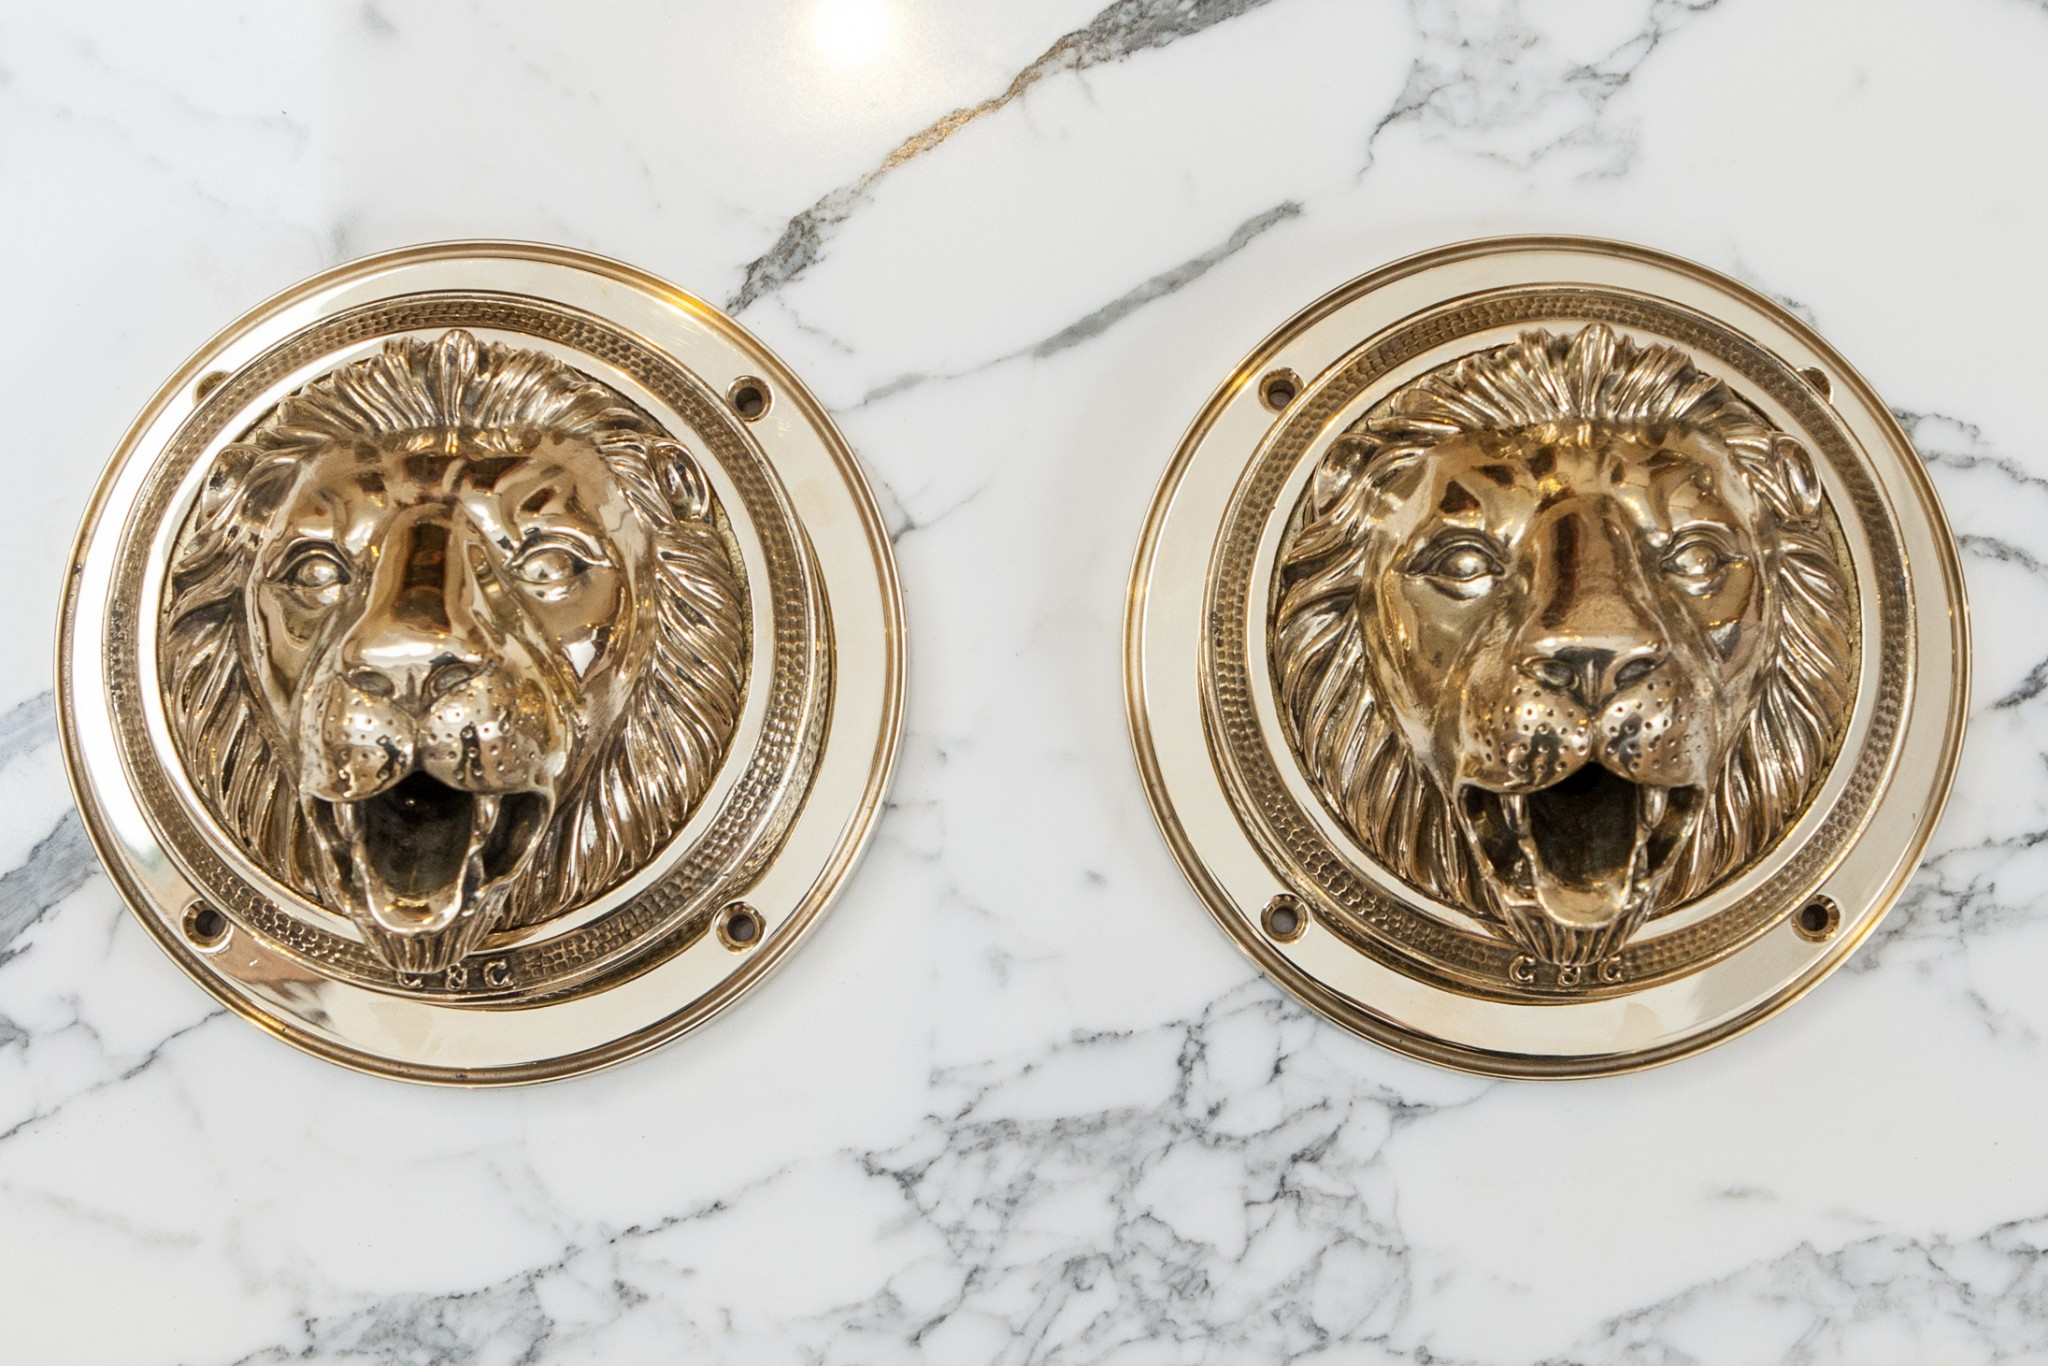 Royal Lions Head in Polished Brass finish.